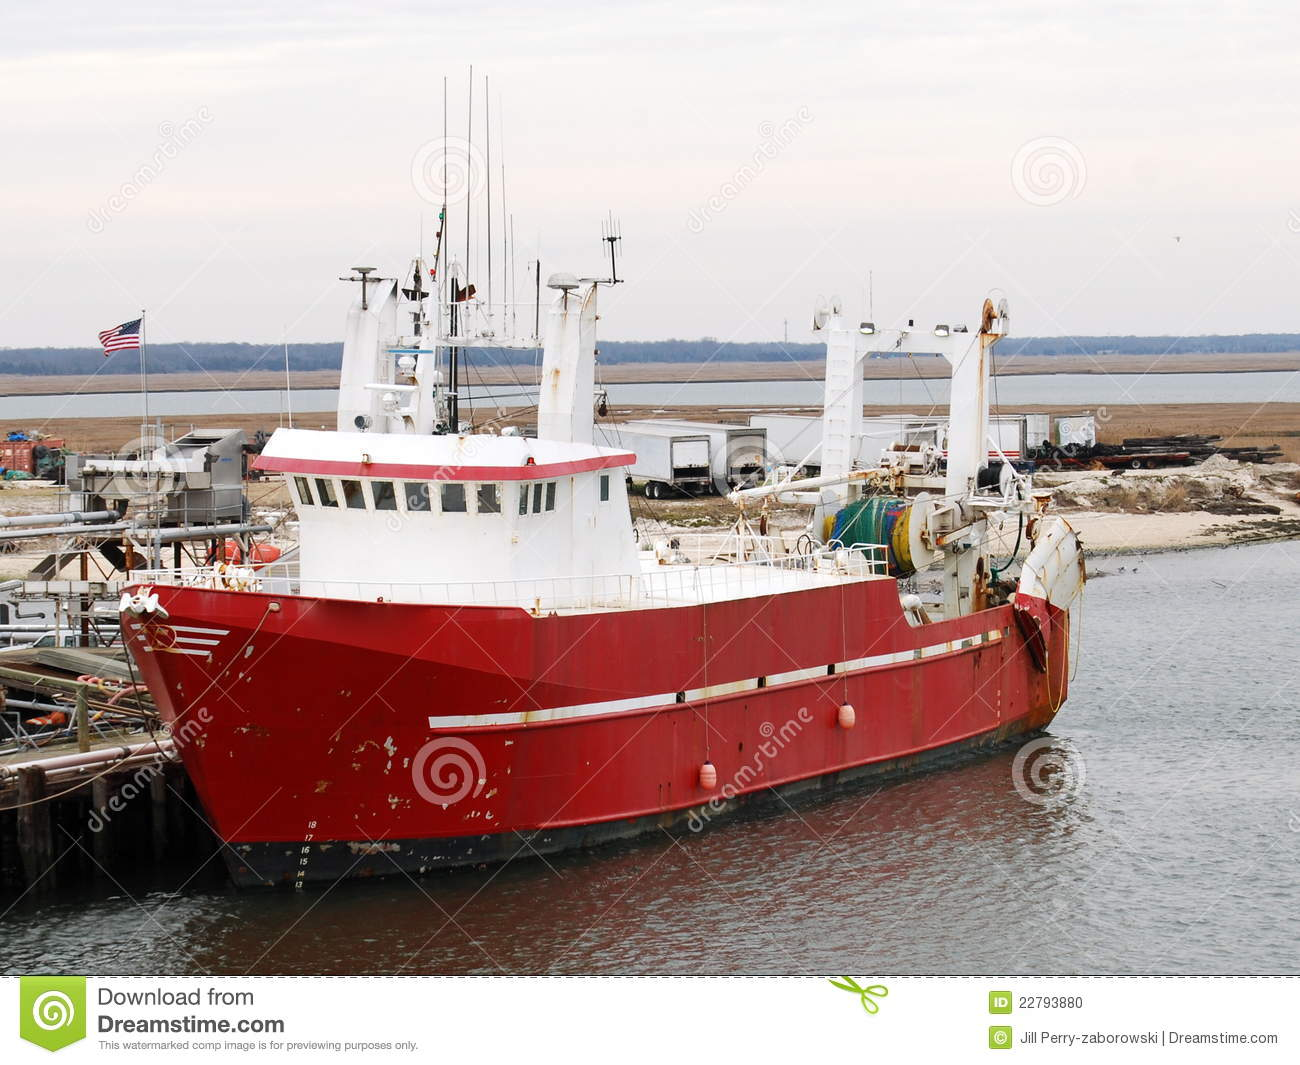 red & white commercial fishing, scallop, boat docked on the water.